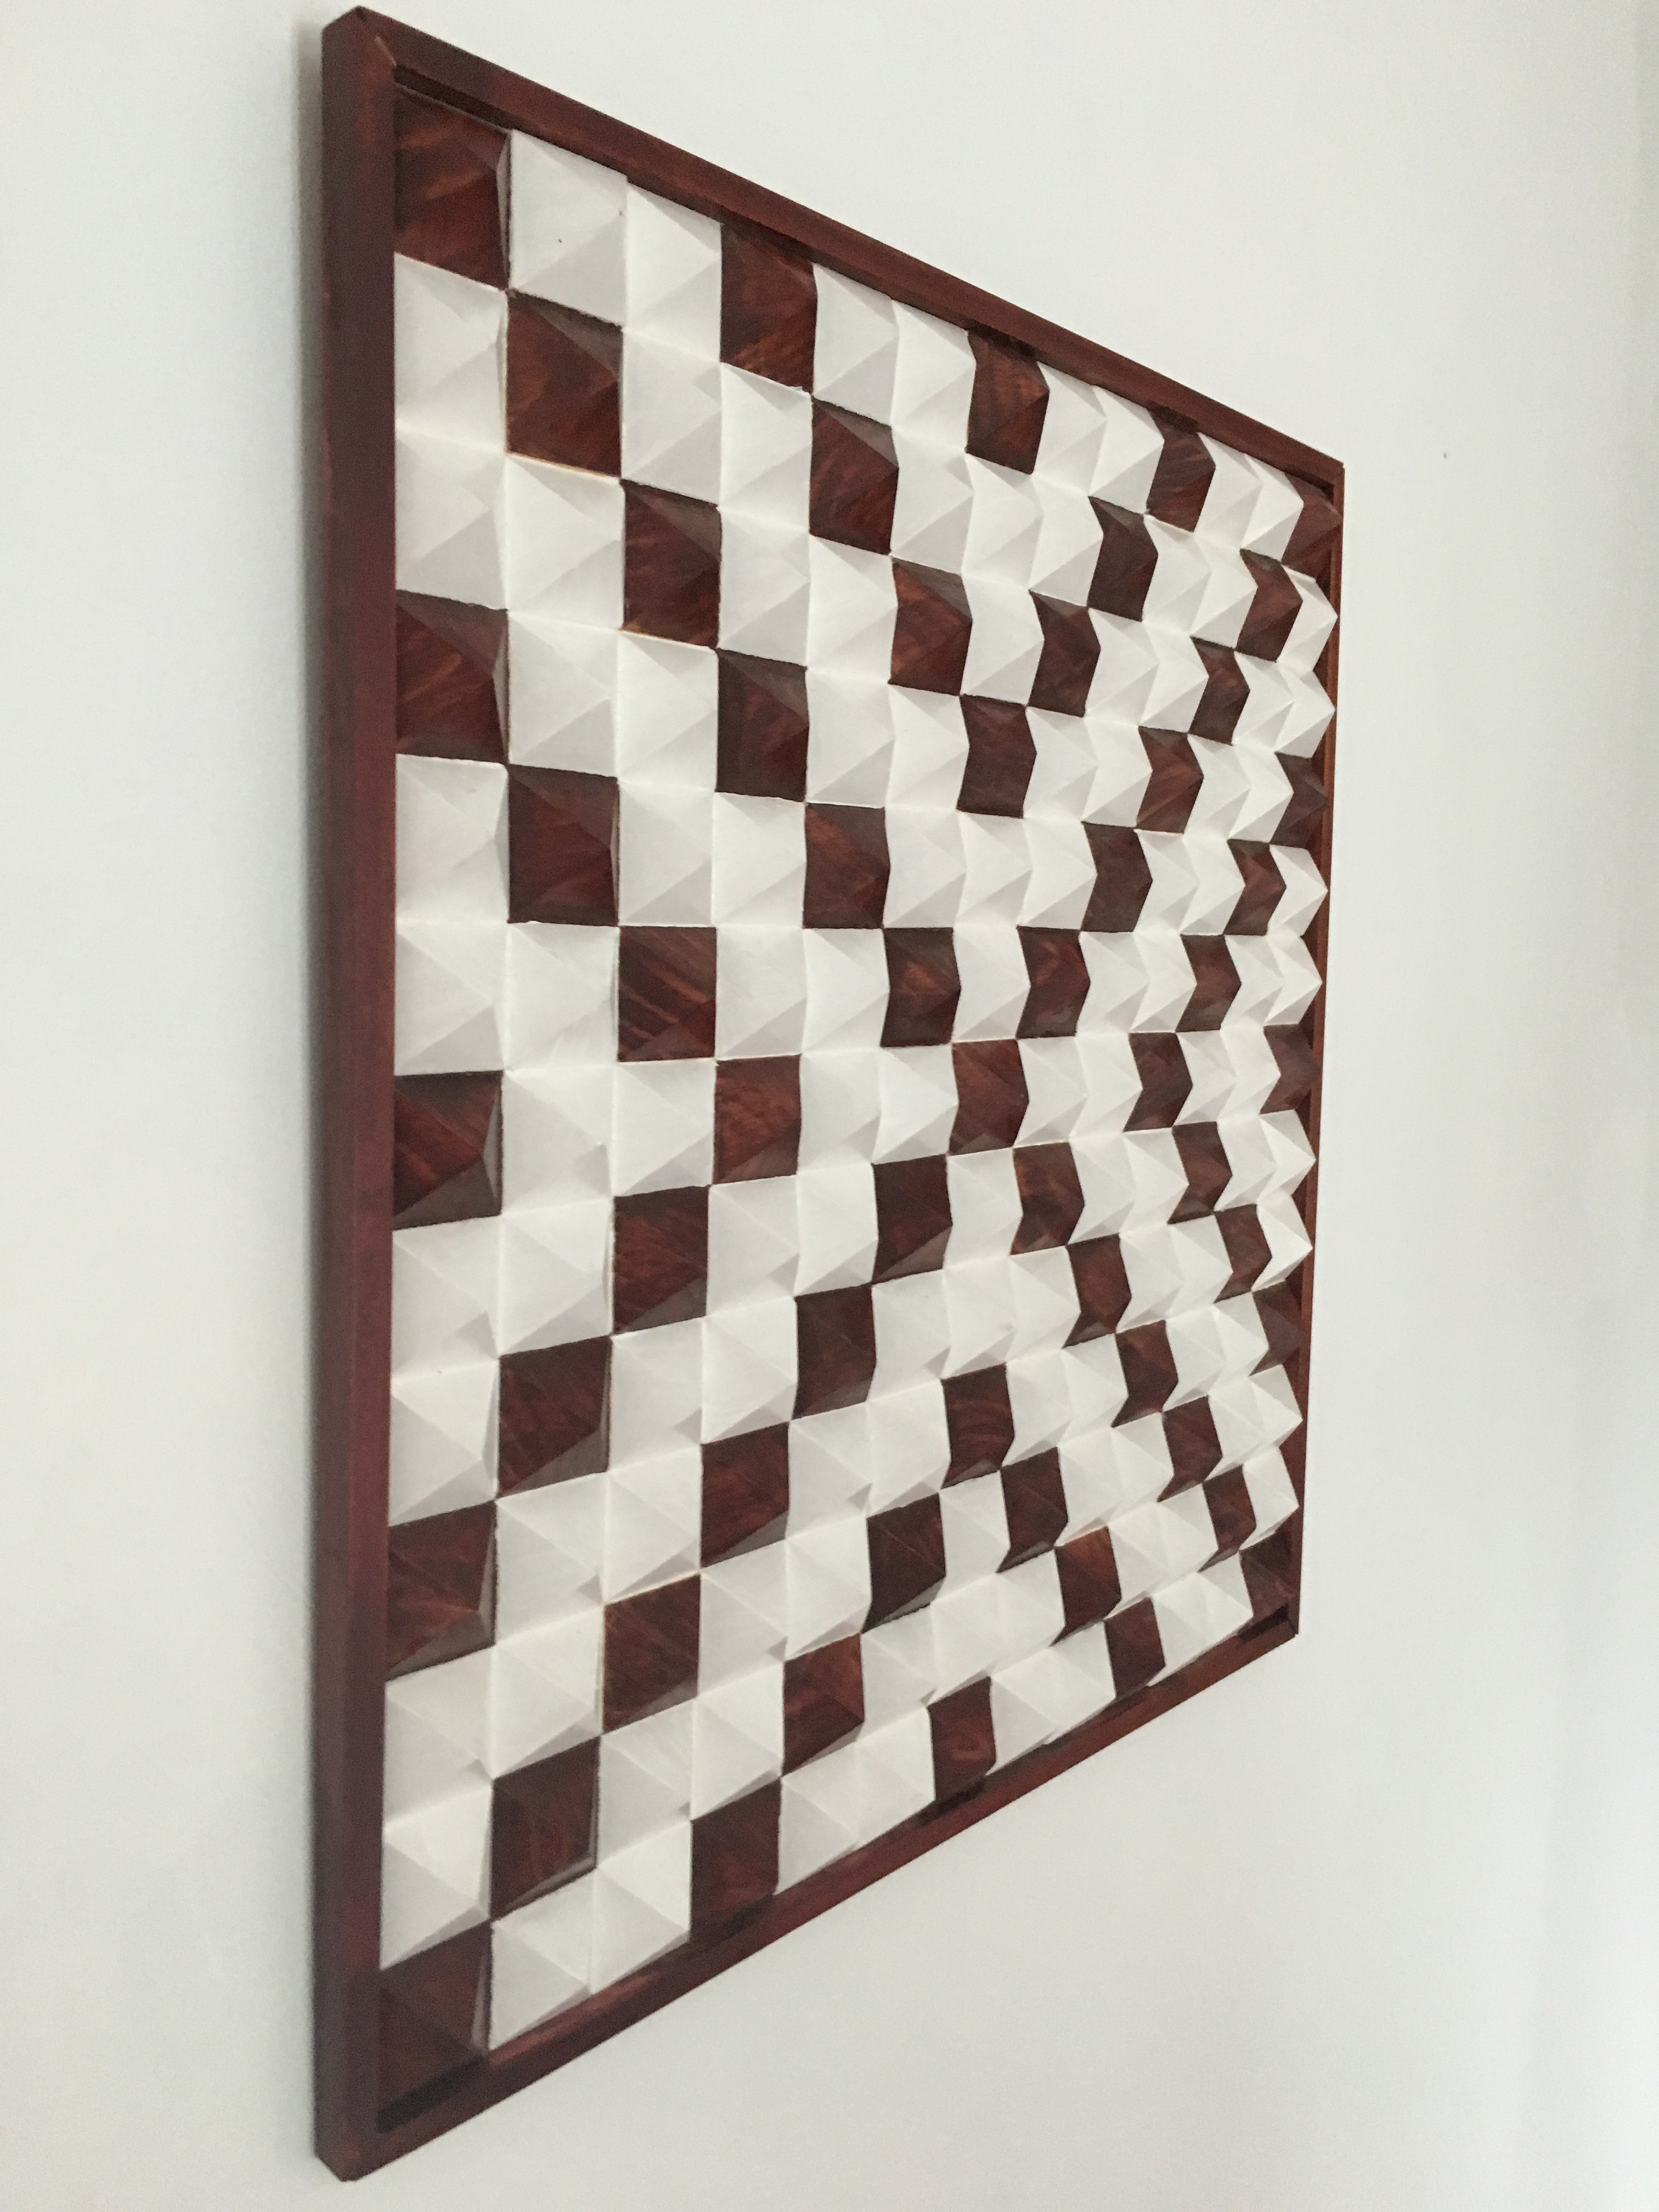 Stained Chestnut and Maple Mosaic